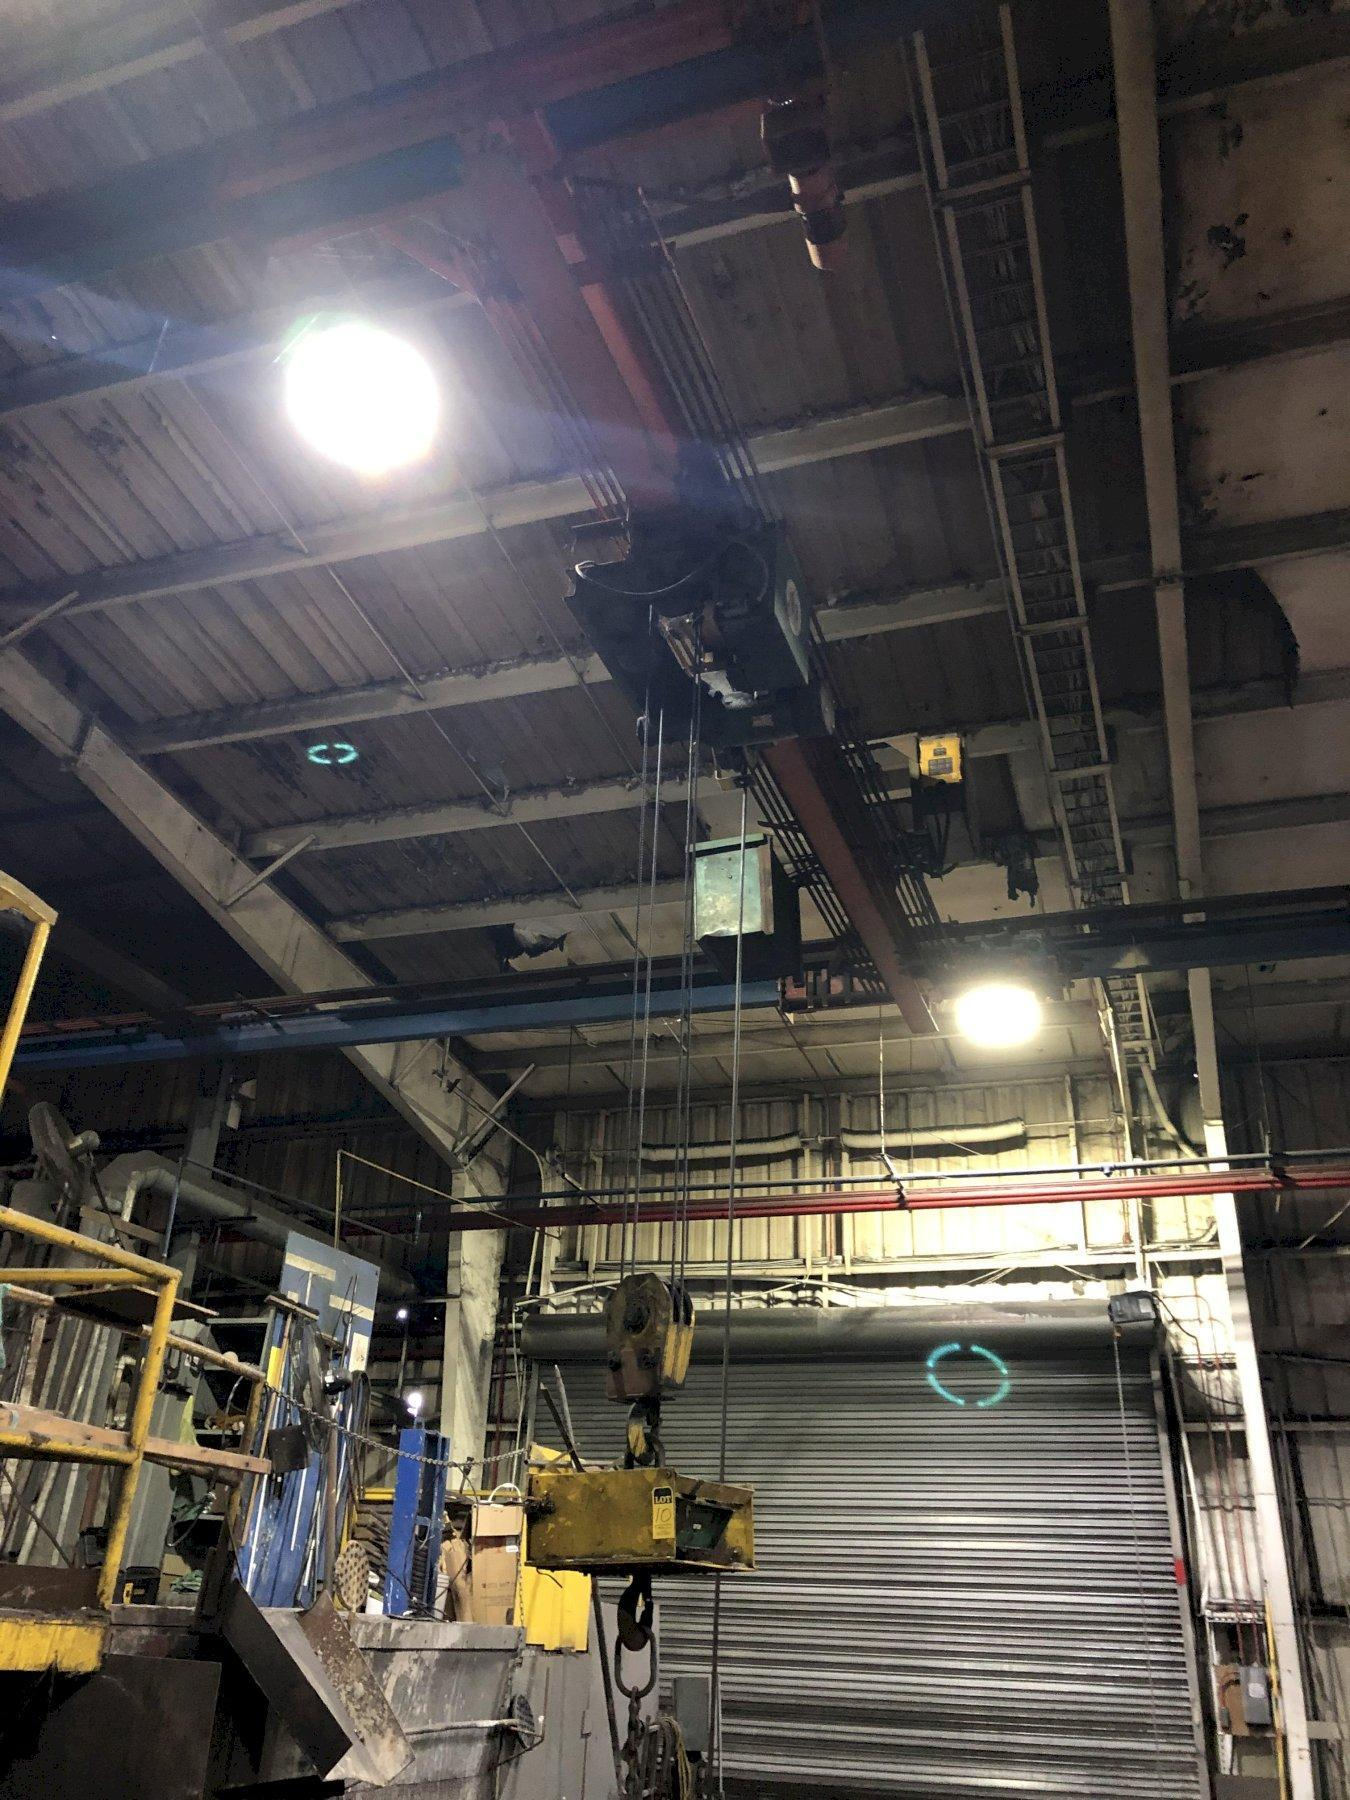 FURNACE CHARGE CRANE SYSTEM WITH APPROX. 100' SELF SUPPORTING RUNWAY AND COLUMNS, 1- APPROX. 25' REMOTE OPERATED BRIDGE CRANE 3 TON CAPACITY, TAG# 12  AND 1- APPROX. 25' PENDENT OPERATED BRIDGE CRANE 5 TON WITH CRANE SCALE, TAG# 10